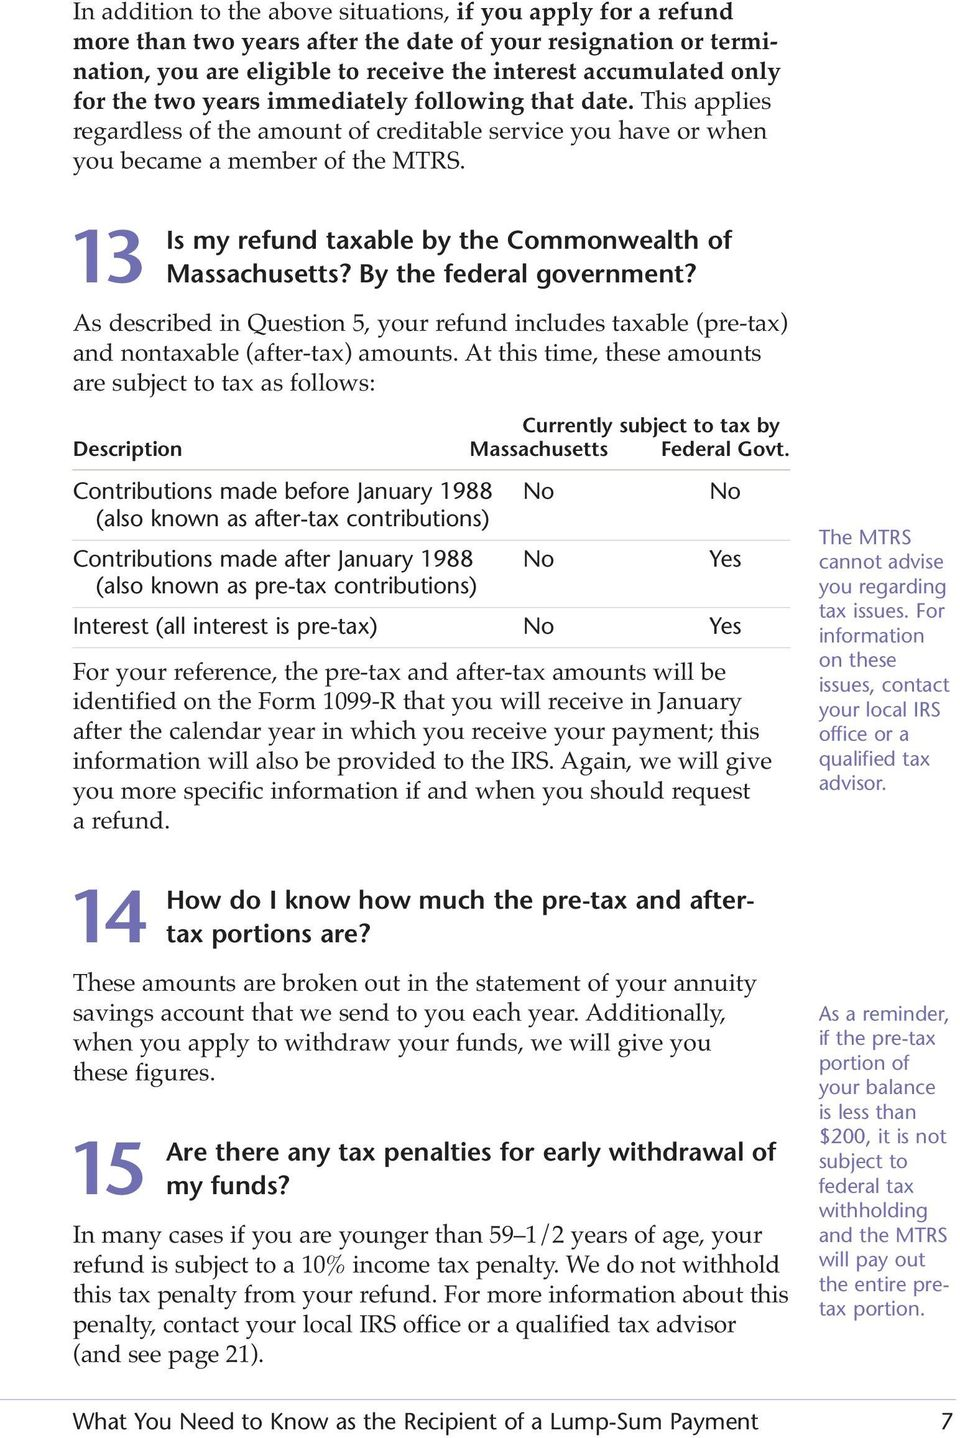 13 Is my refund taxable by the Commonwealth of Massachusetts? By the federal government? As described in Question 5, your refund includes taxable (pre-tax) and nontaxable (after-tax) amounts.